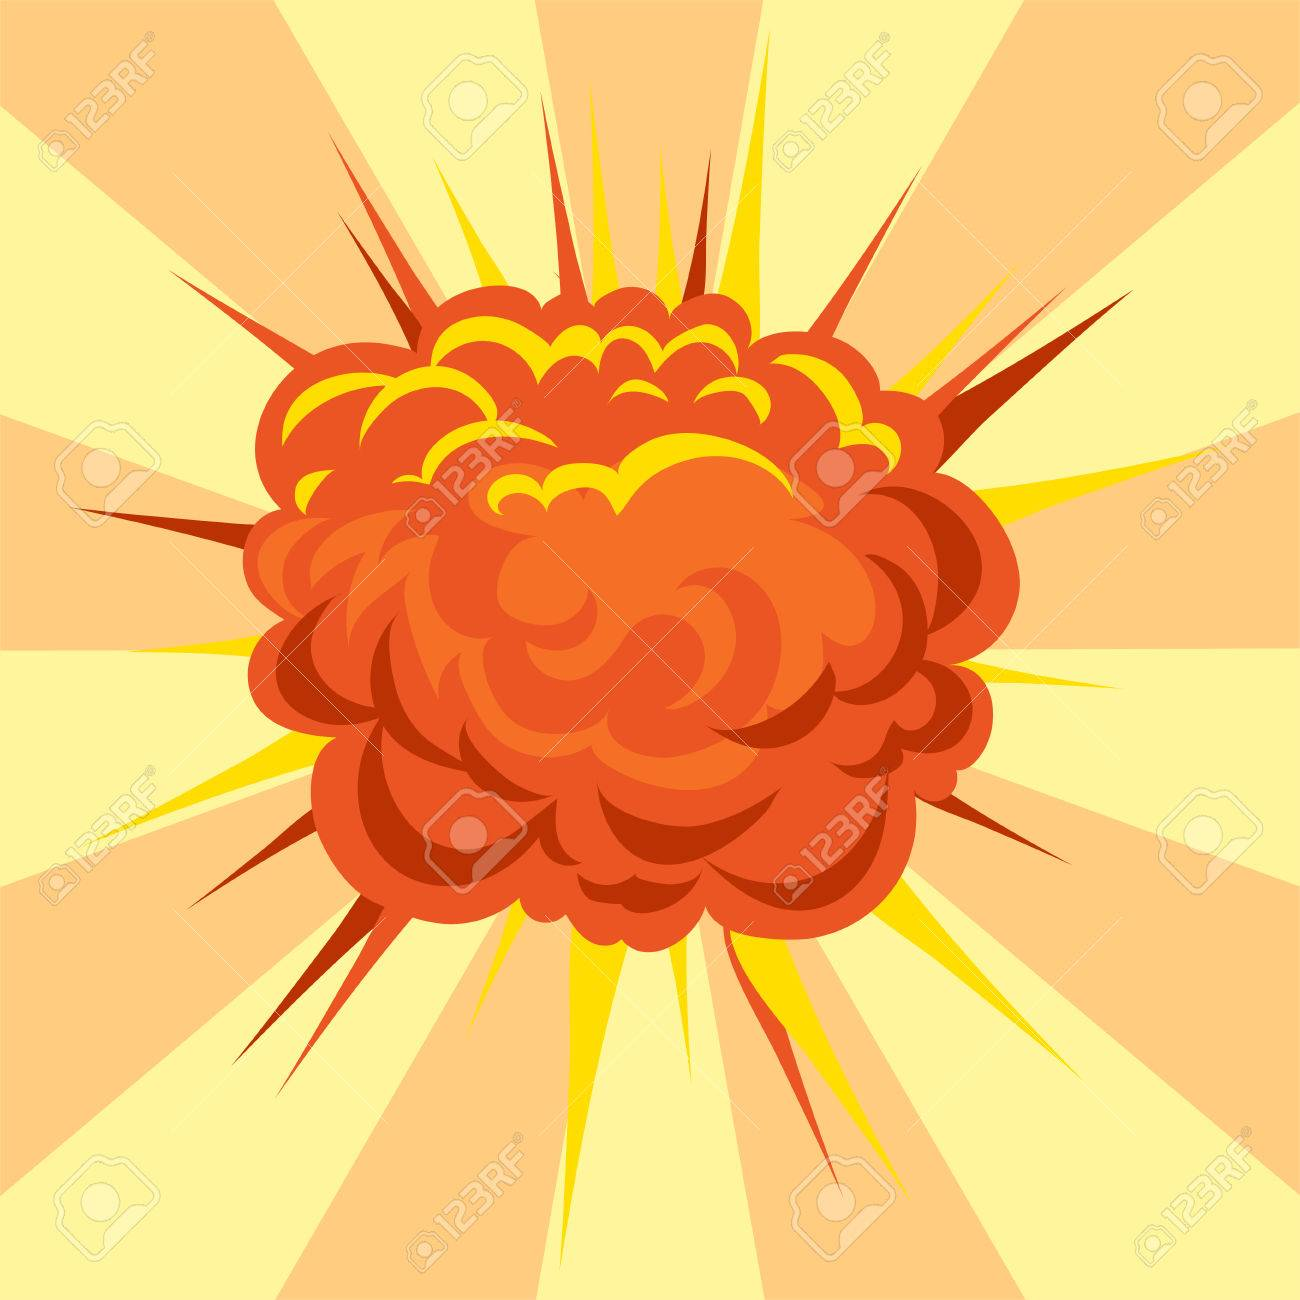 cartoon explosion boom effect animation game sprite sheet explode royalty free cliparts vectors and stock illustration image 81071133 cartoon explosion boom effect animation game sprite sheet explode